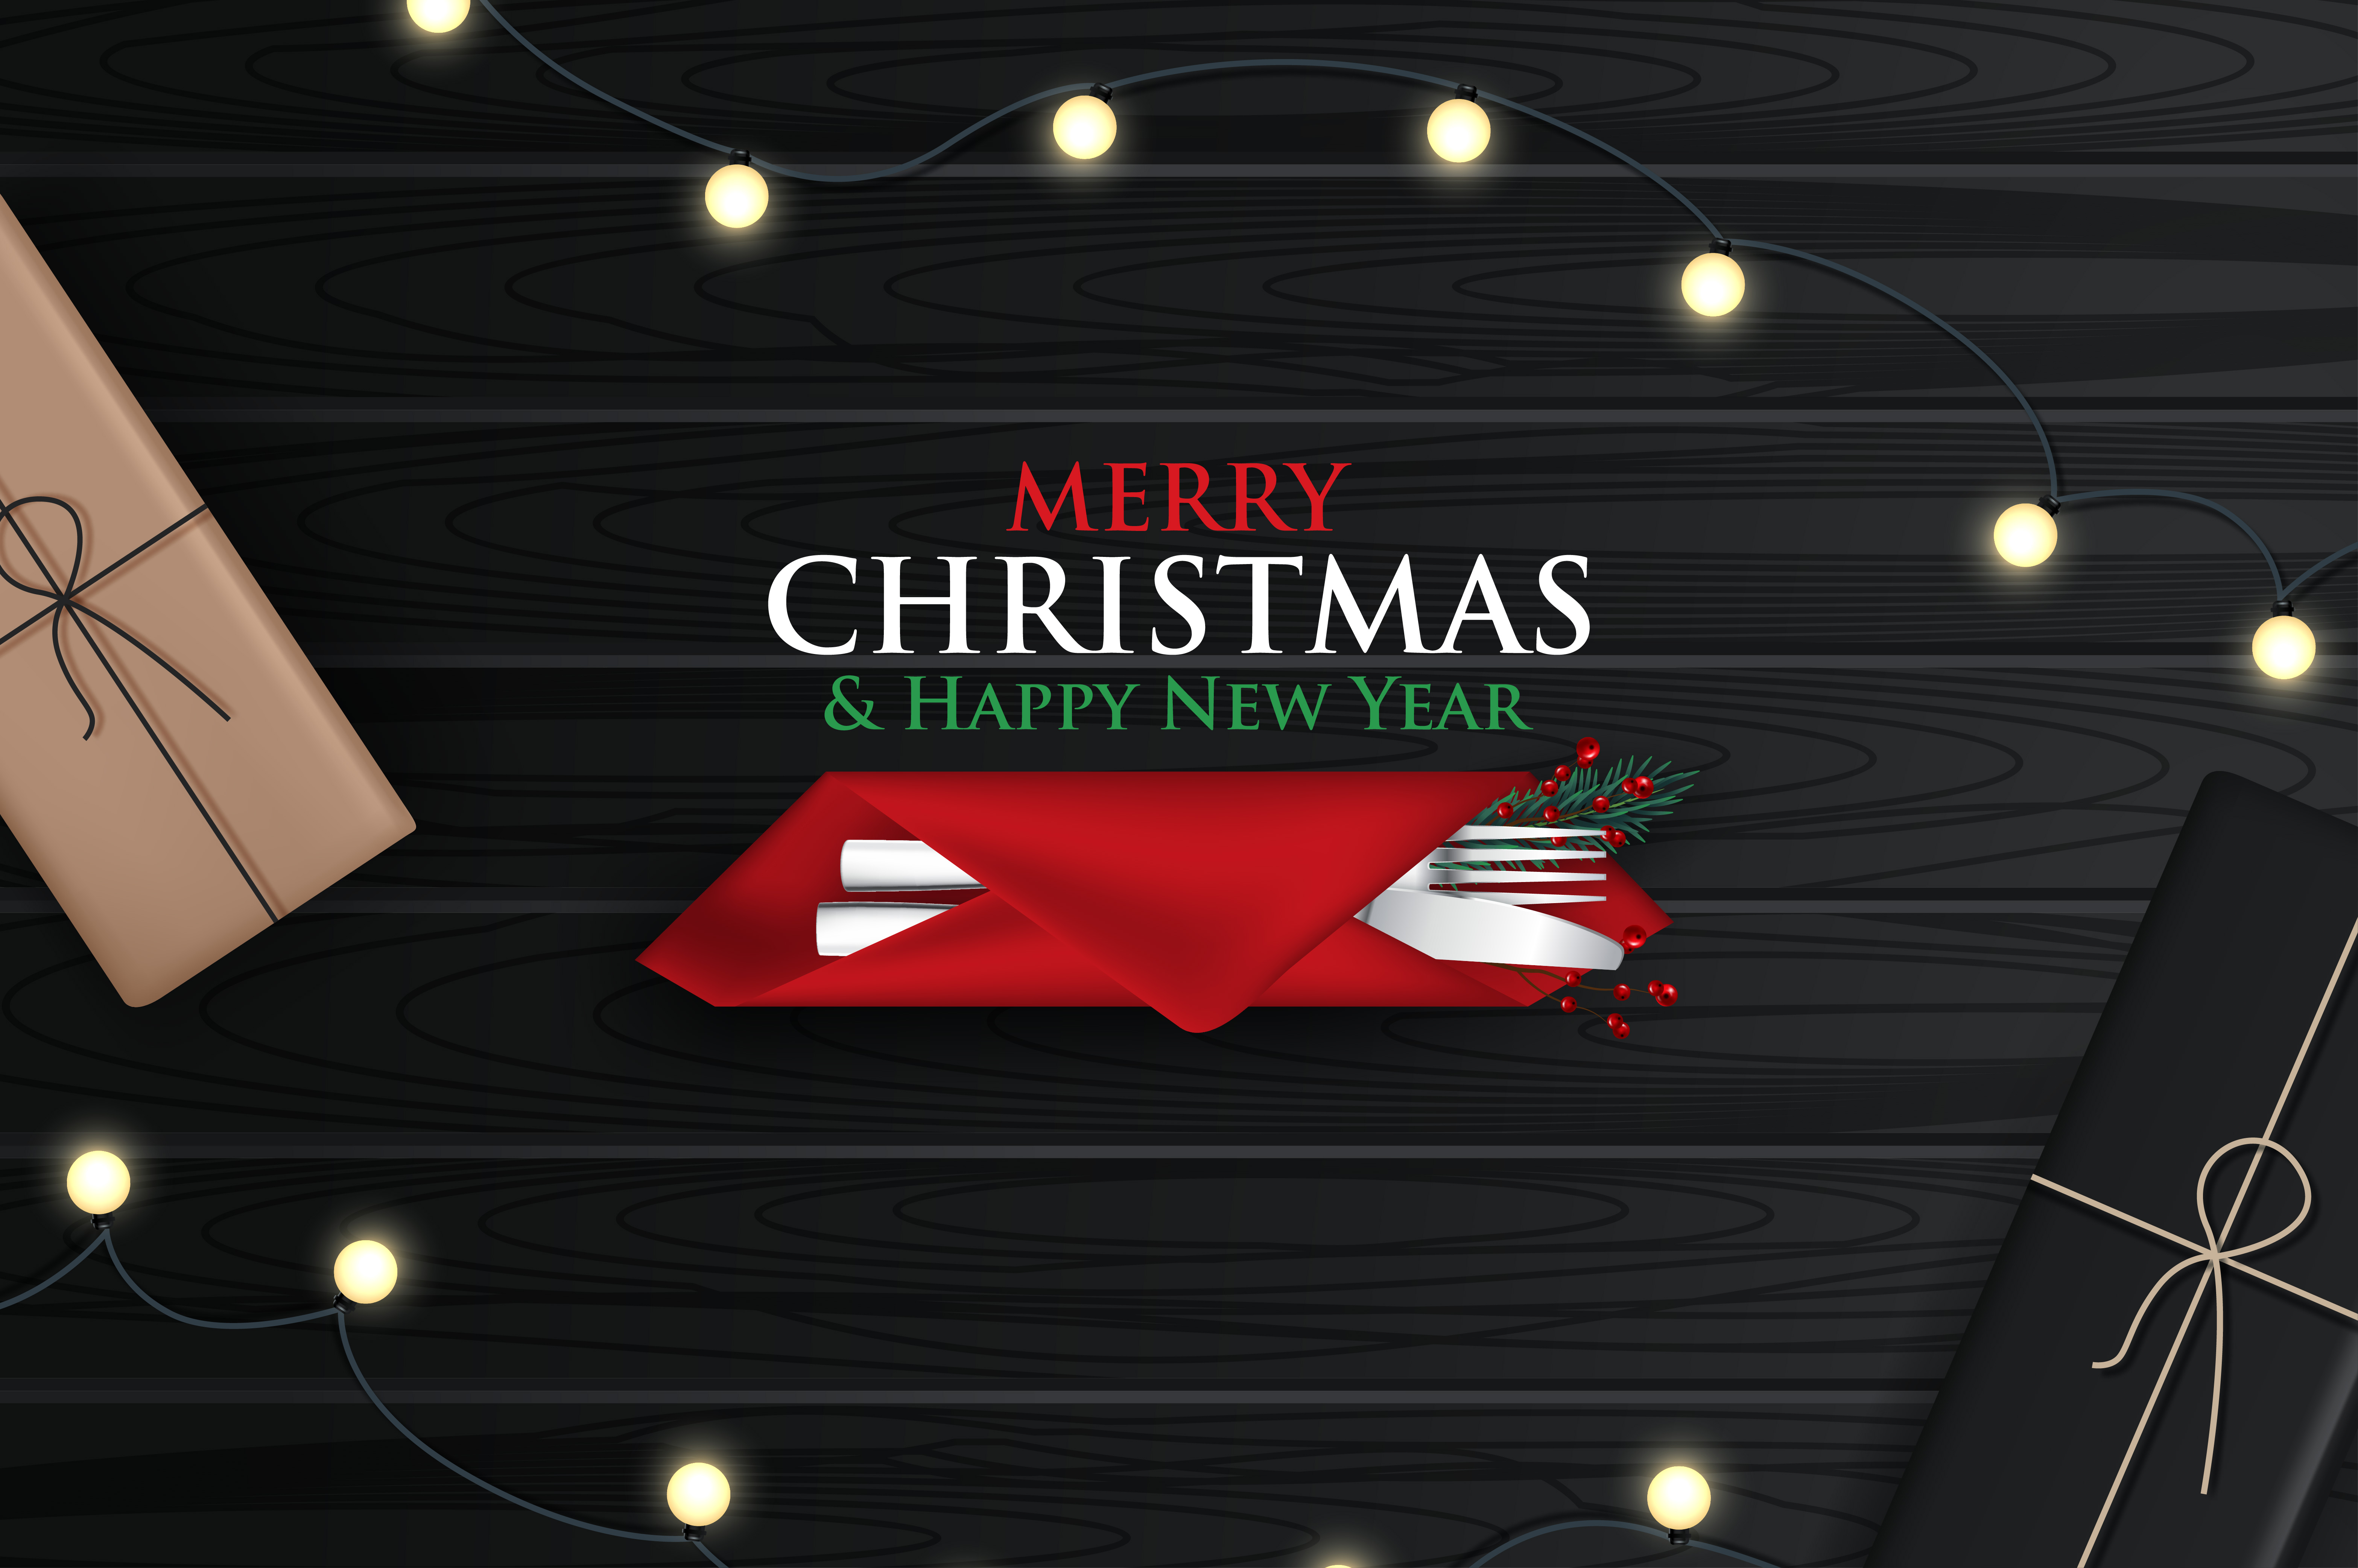 Christmas Buffets 2020 2020 new year card with Christmas dinner   Download Free Vectors